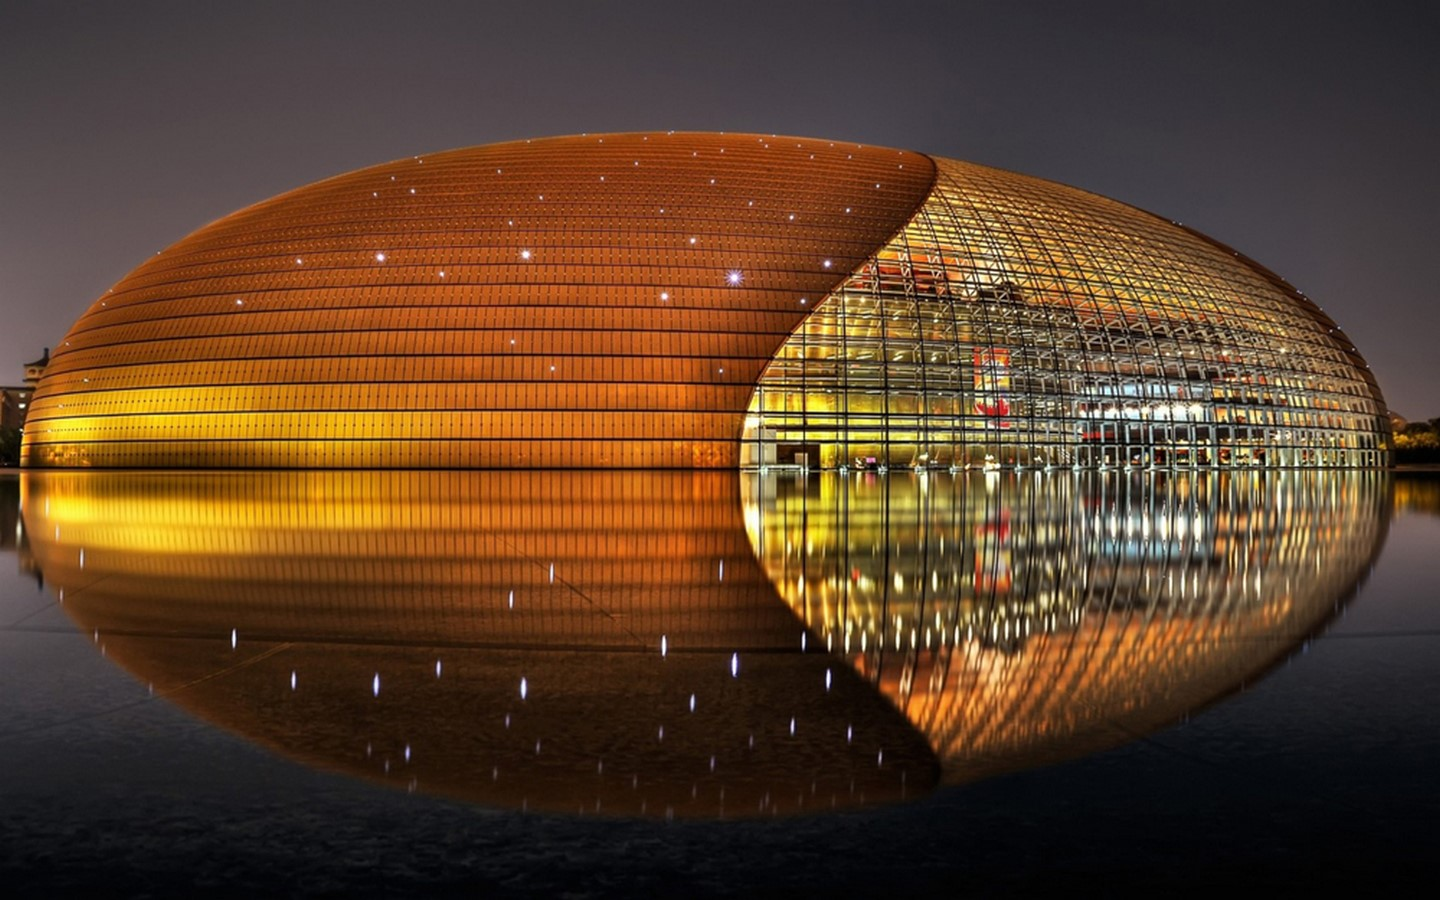 10 Things we can learn from Chinese Architecture - Sheet14